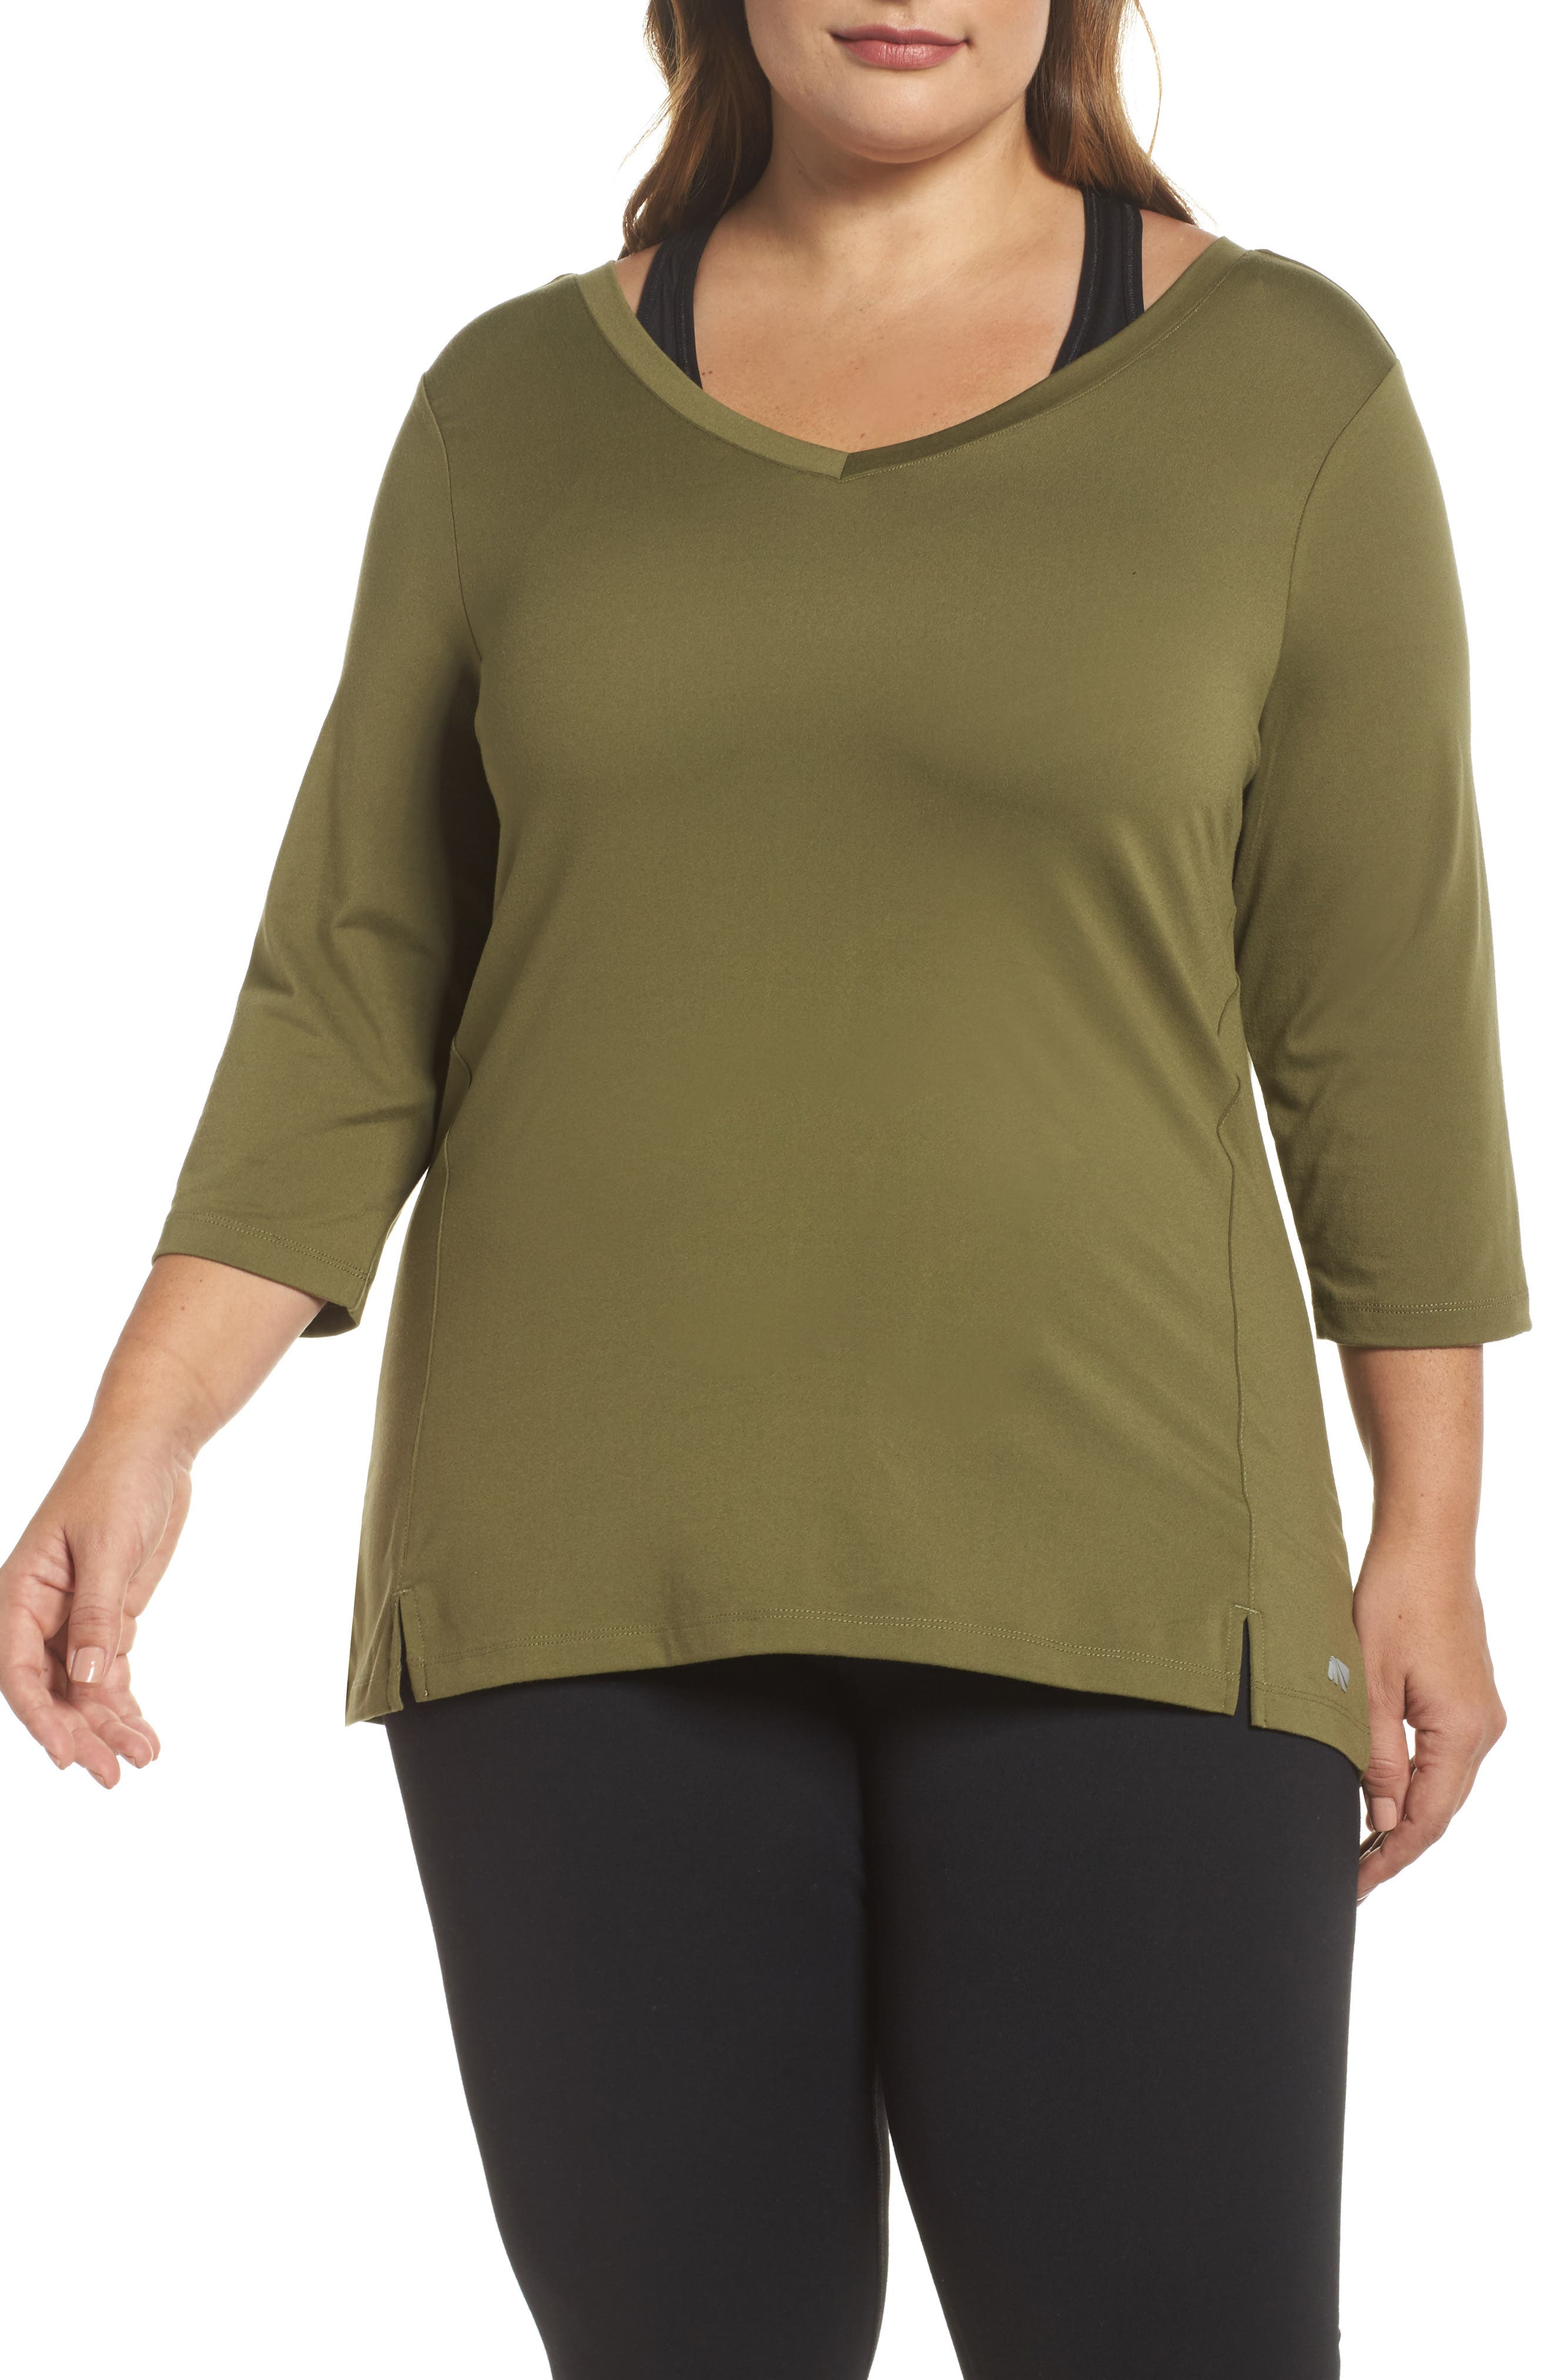 Main Image - Marika Curves Formation Top (Plus Size)